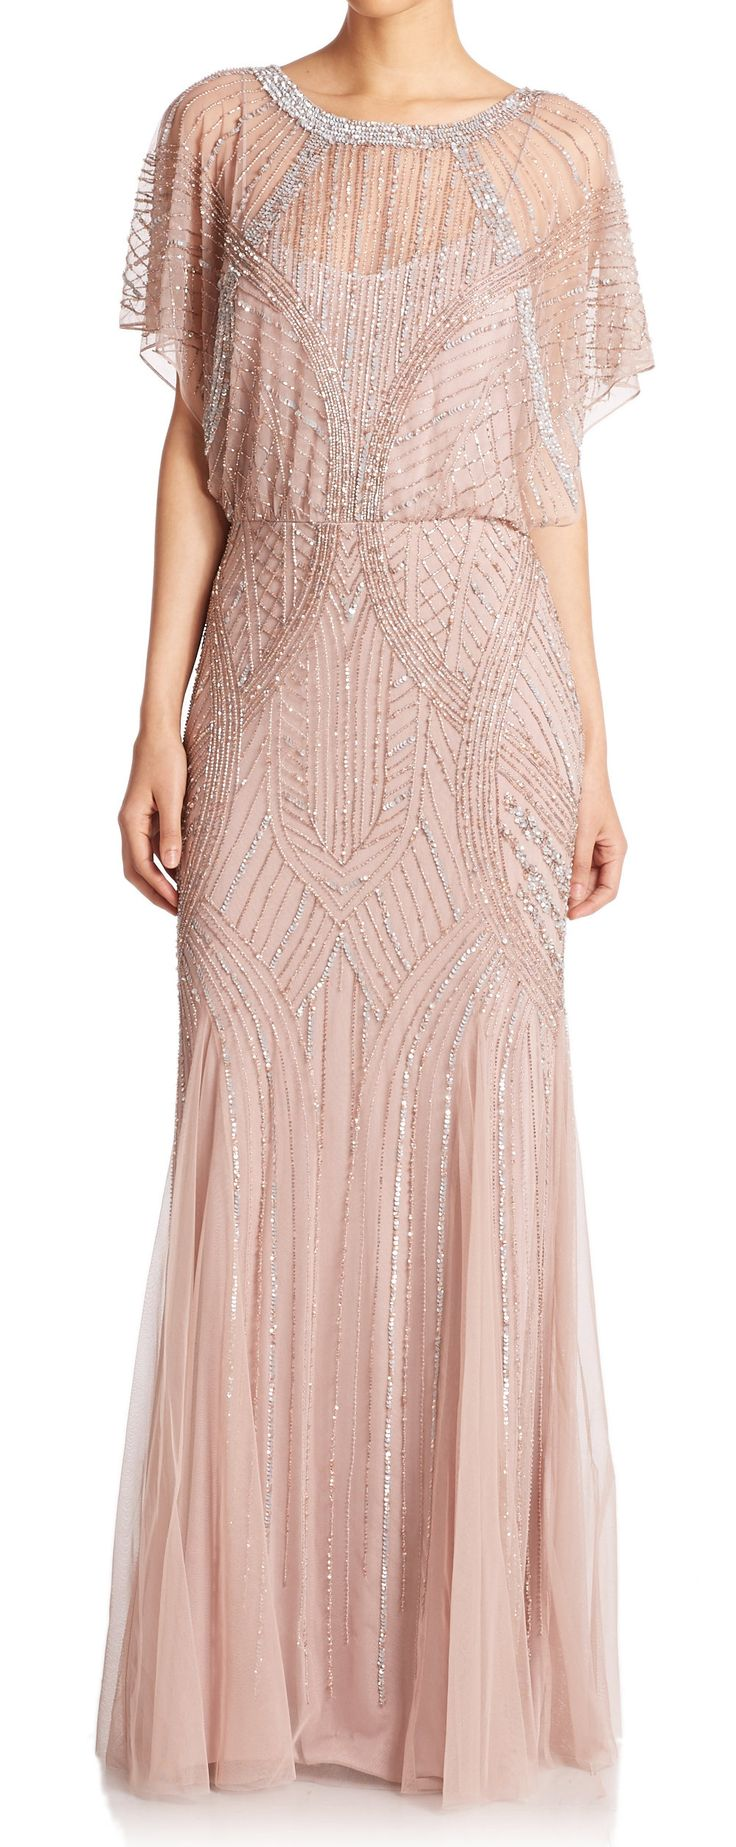 Blush beaded gown #artdeco #20s #gatsby